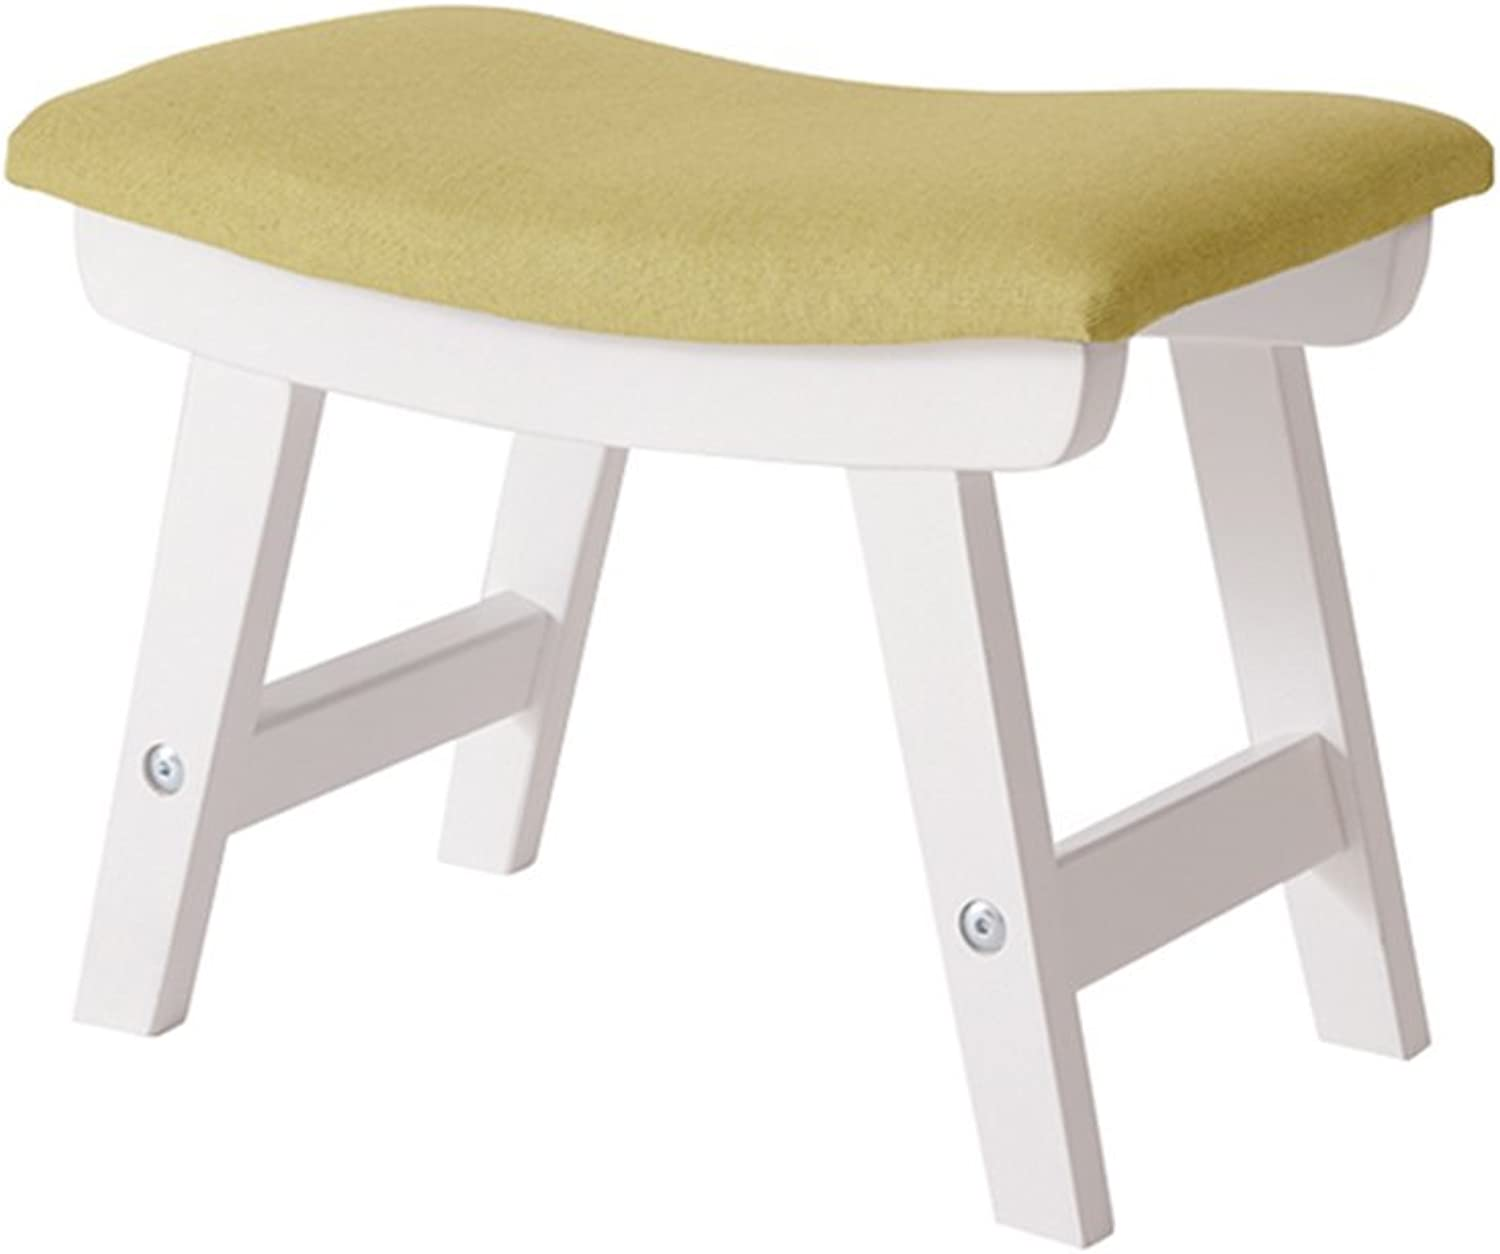 Change shoes Stool Foot Stool Upholstered Footrest Wooden Storage Dust-Proof Hallway Stand Chair Linen Fabric Cushion for Living Room Available White 38x24x29cm